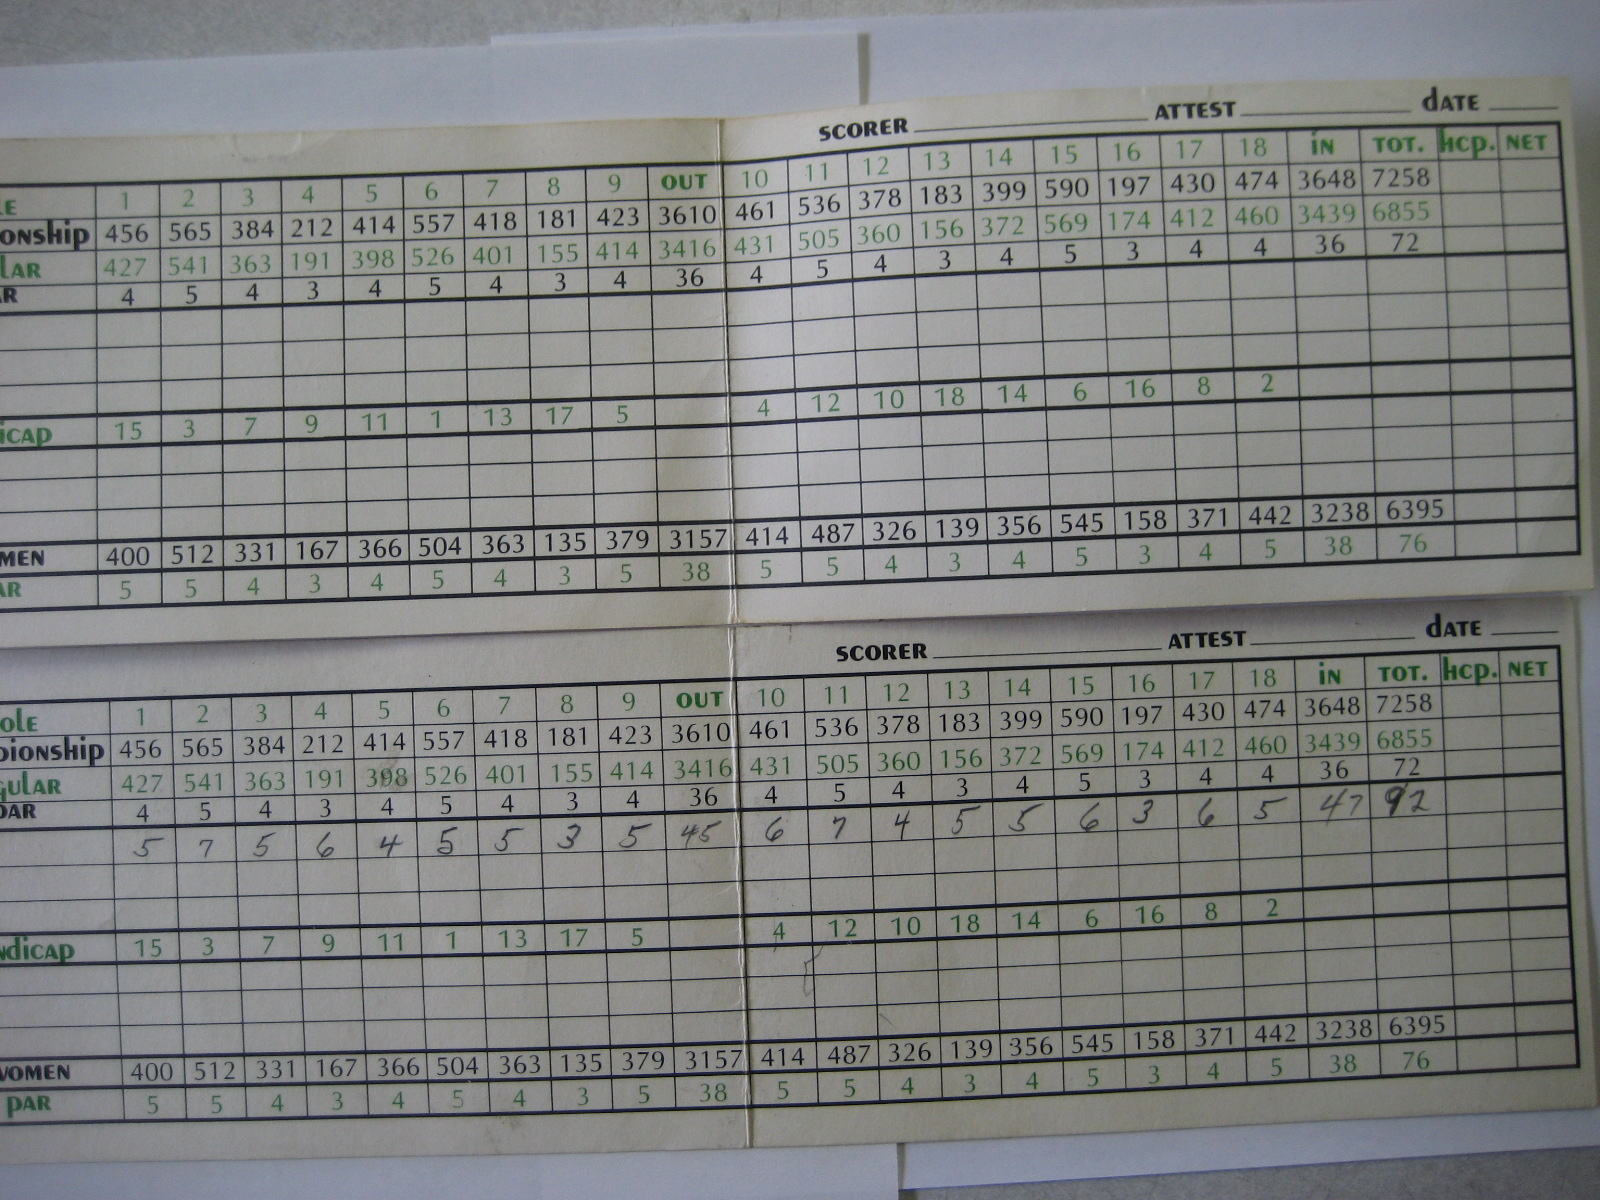 Playboy Club Lake Geneva Golf Scorecard